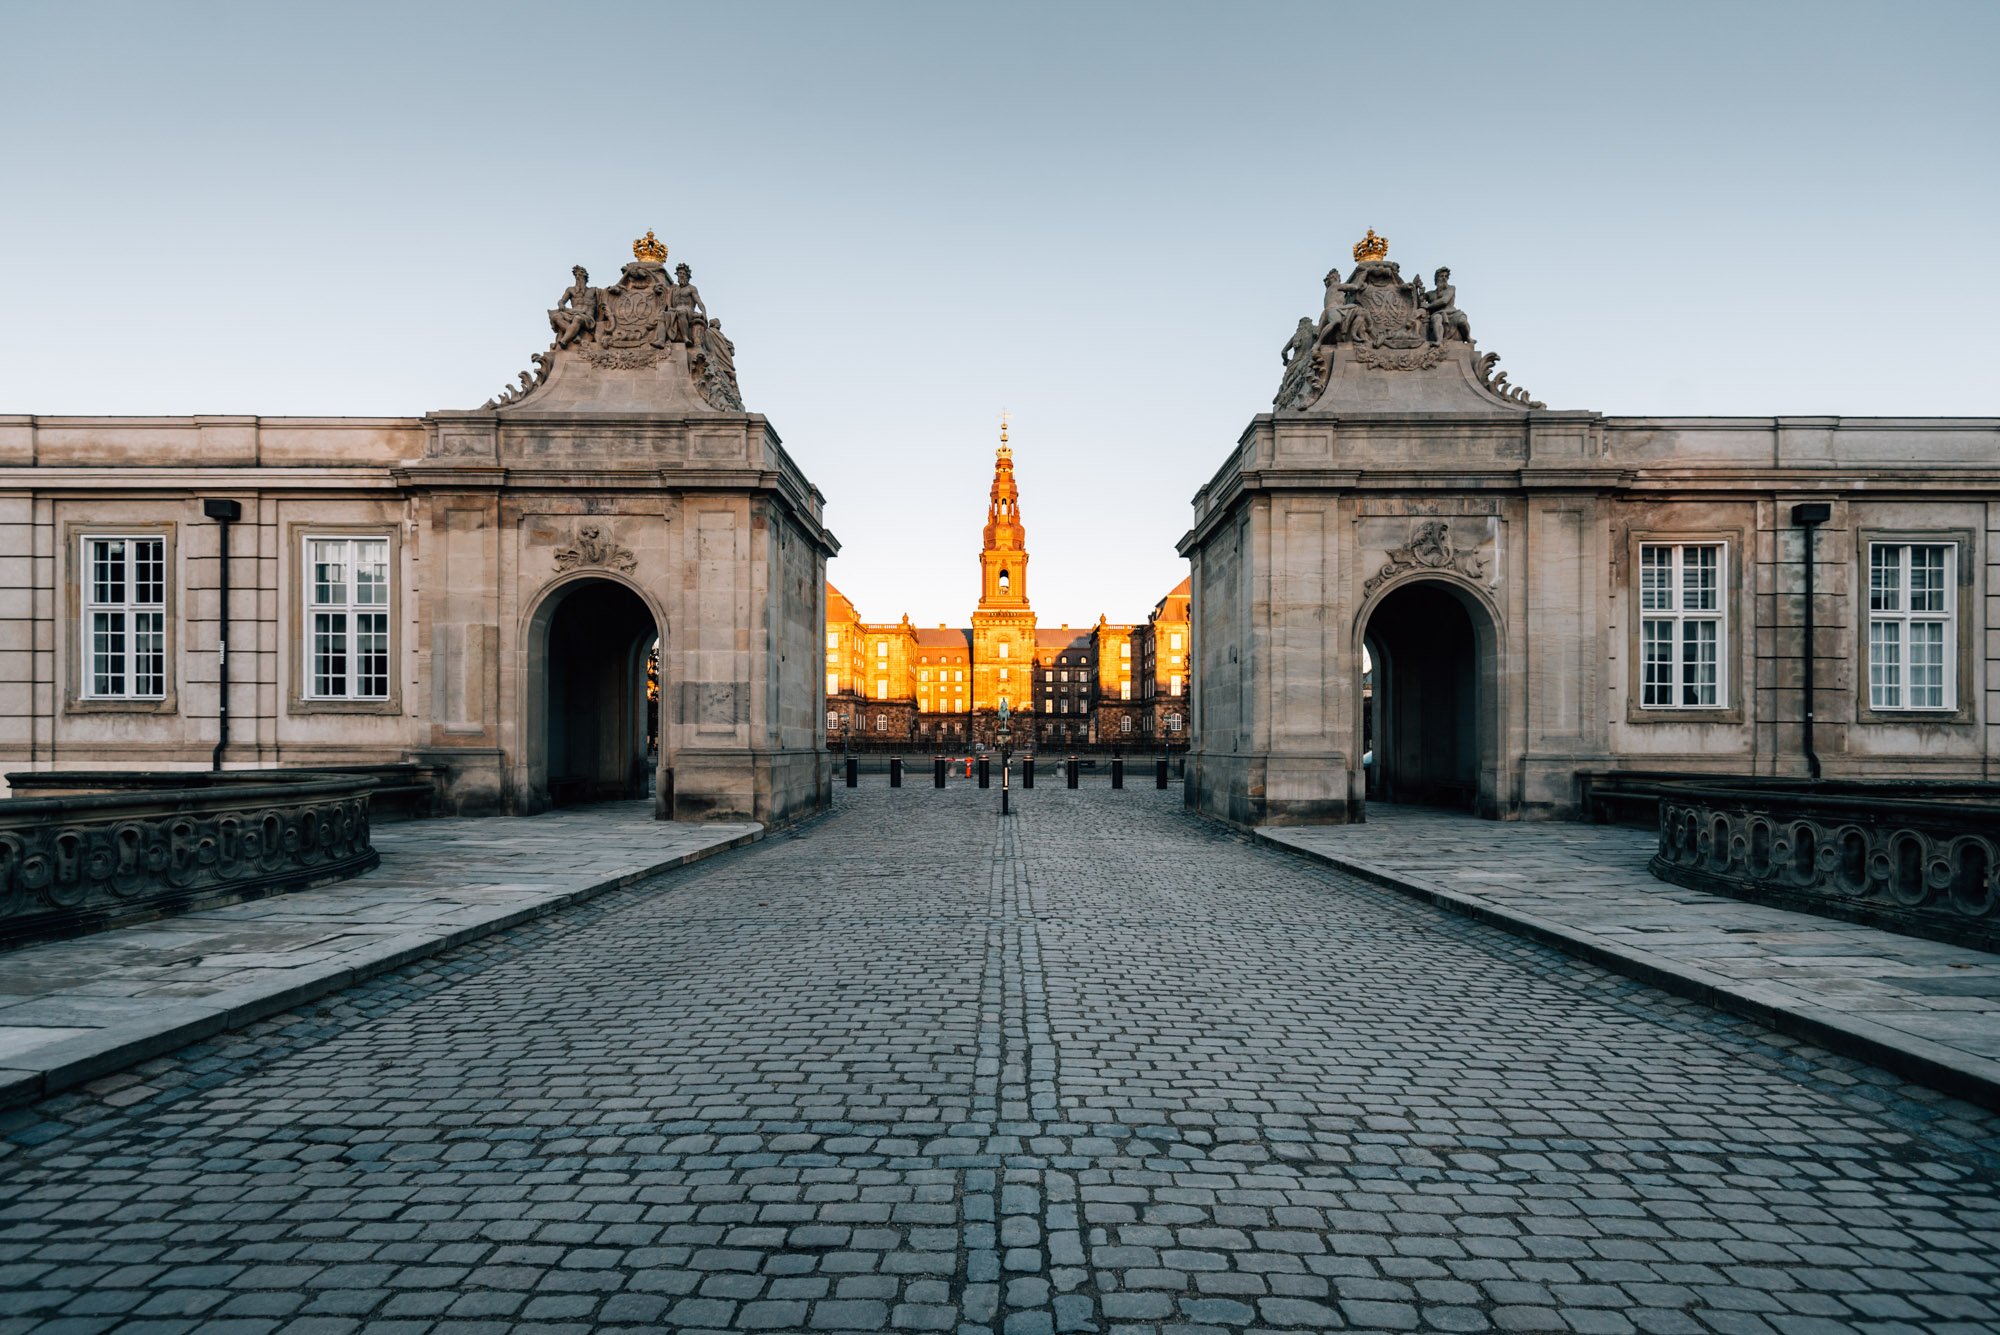 Jeff On The Road - Copenhagen - Activity - Christiansborg Palace - All the photos are under Copyright © 2017 Jeff Frenette Photography / dezjeff. To use the photos, please contact me at dezjeff@me.com.